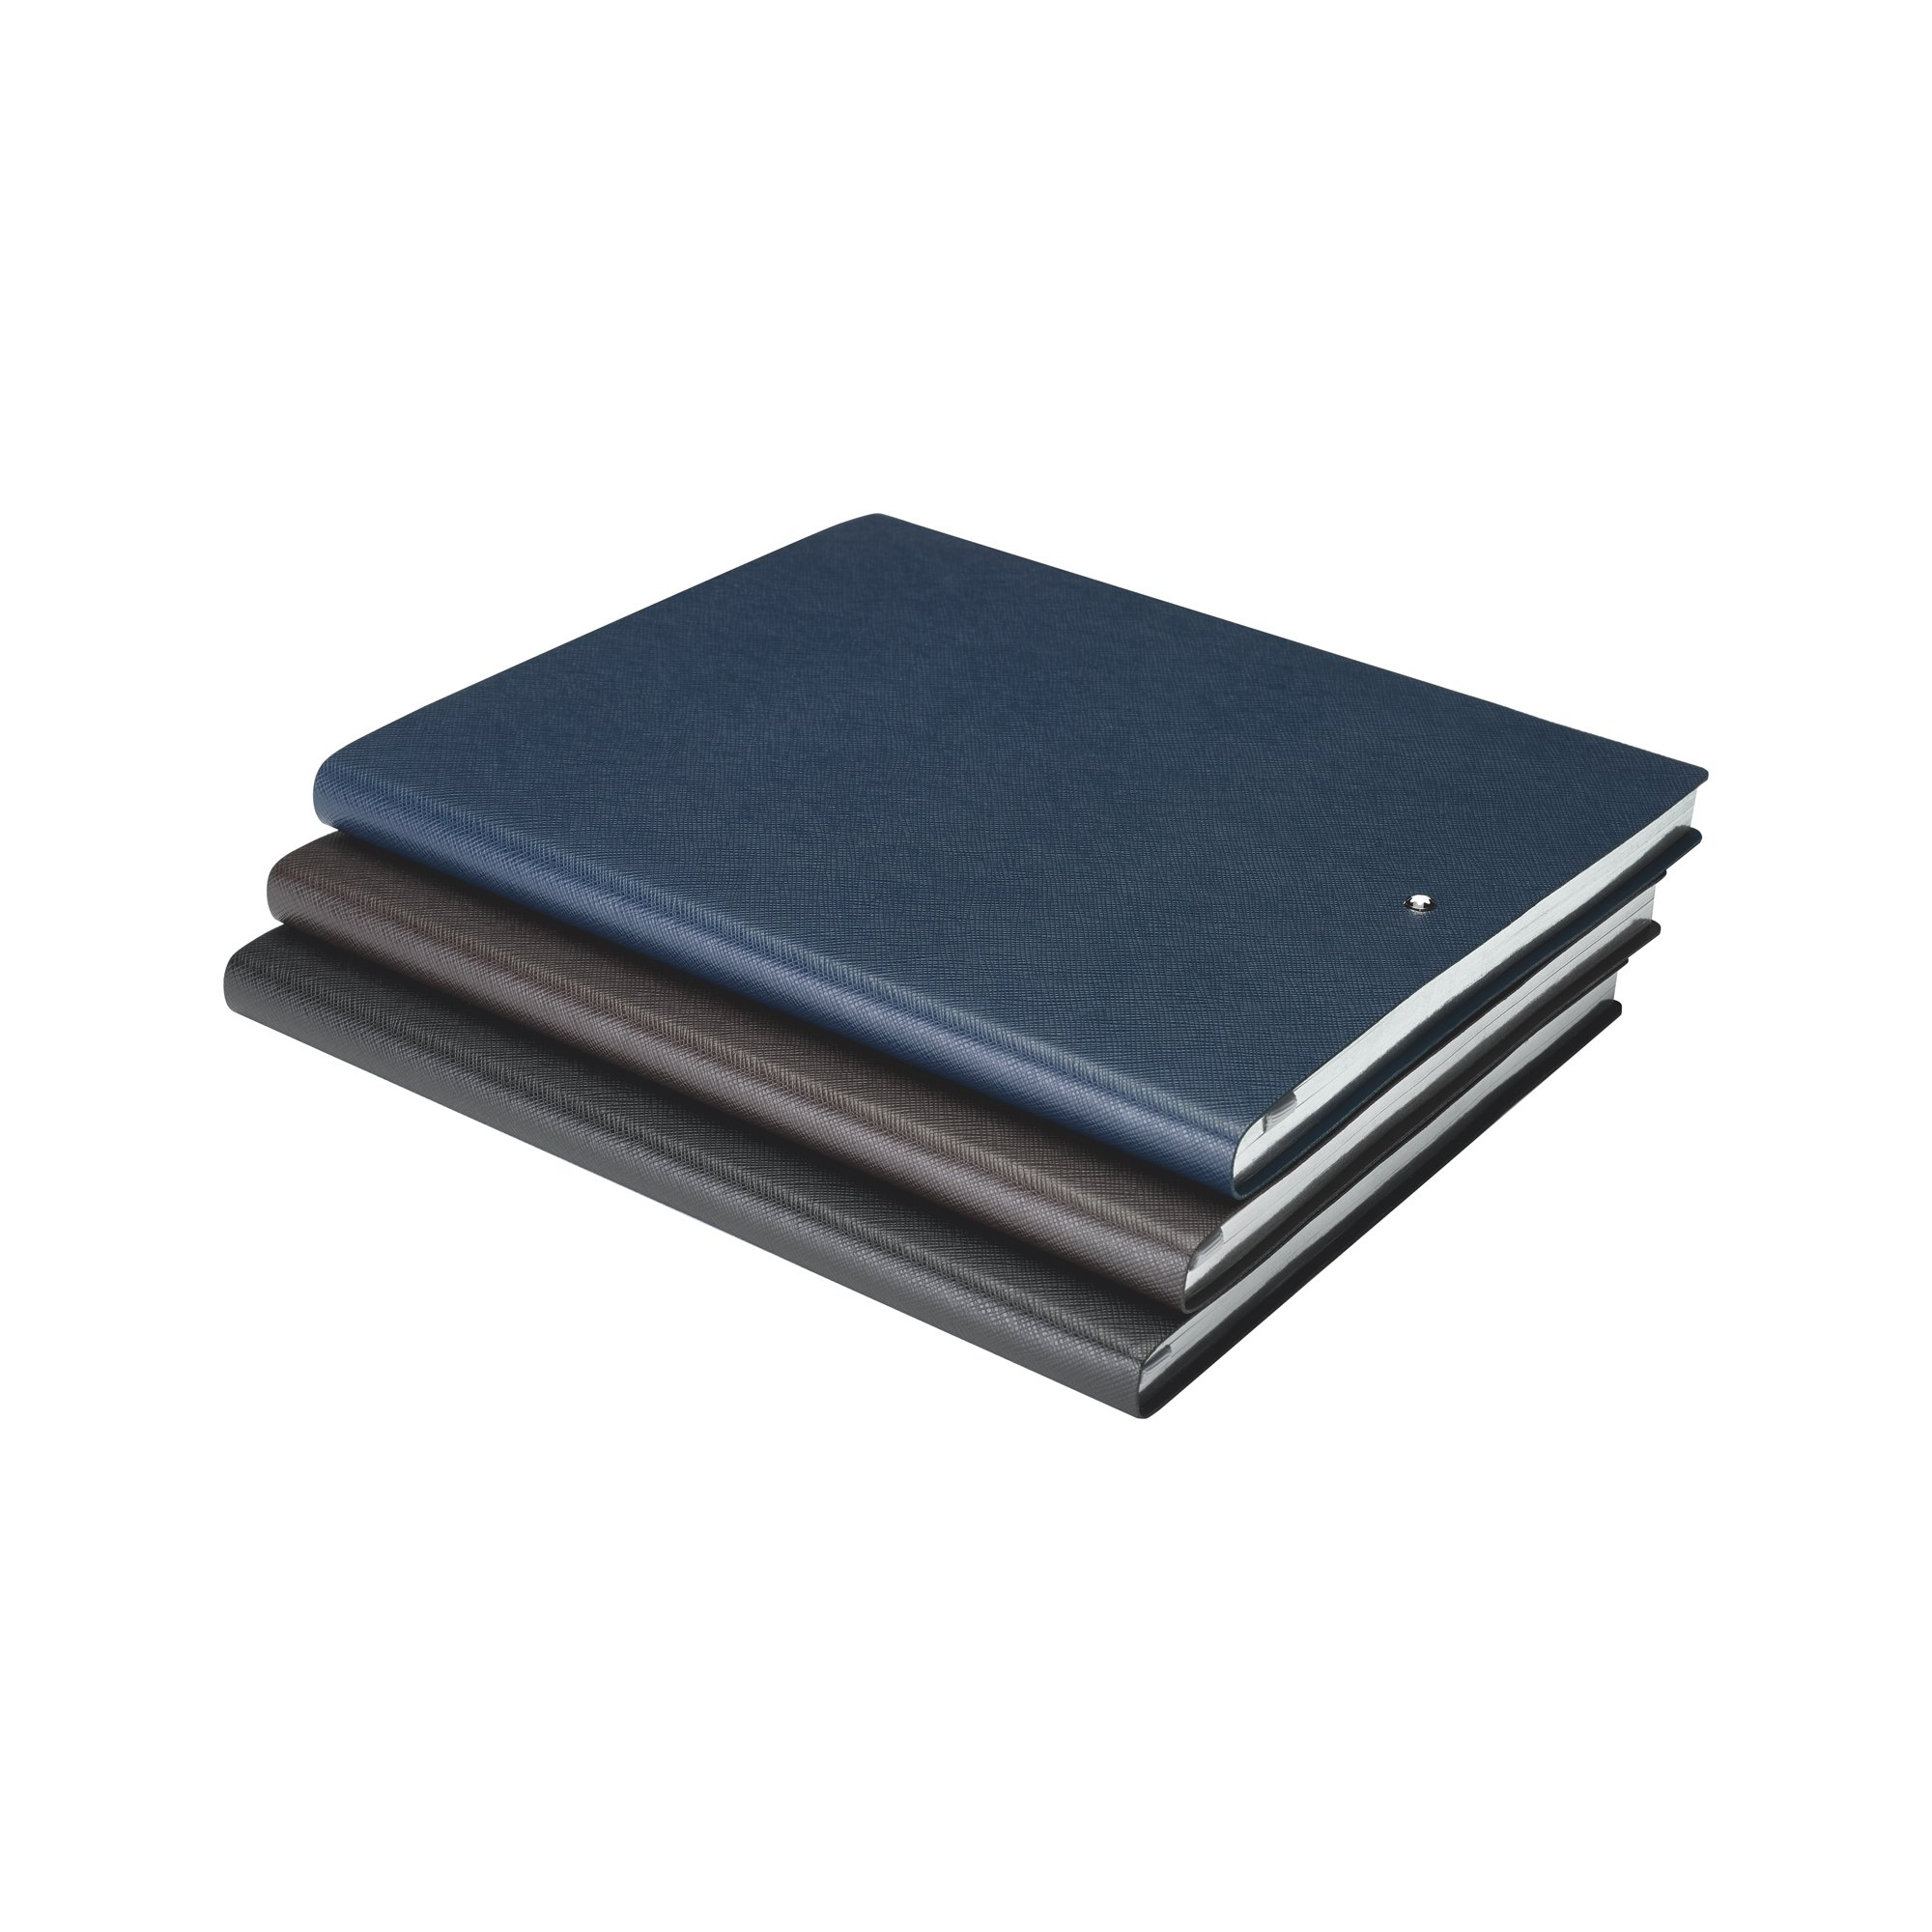 Montblanc Sketch Book Black Lined #149 Fine Stationery 116931 / Elegant Sketching Book with Leather Binding and Ruled Pages / 1 x (8.2 x 10.2 in.)